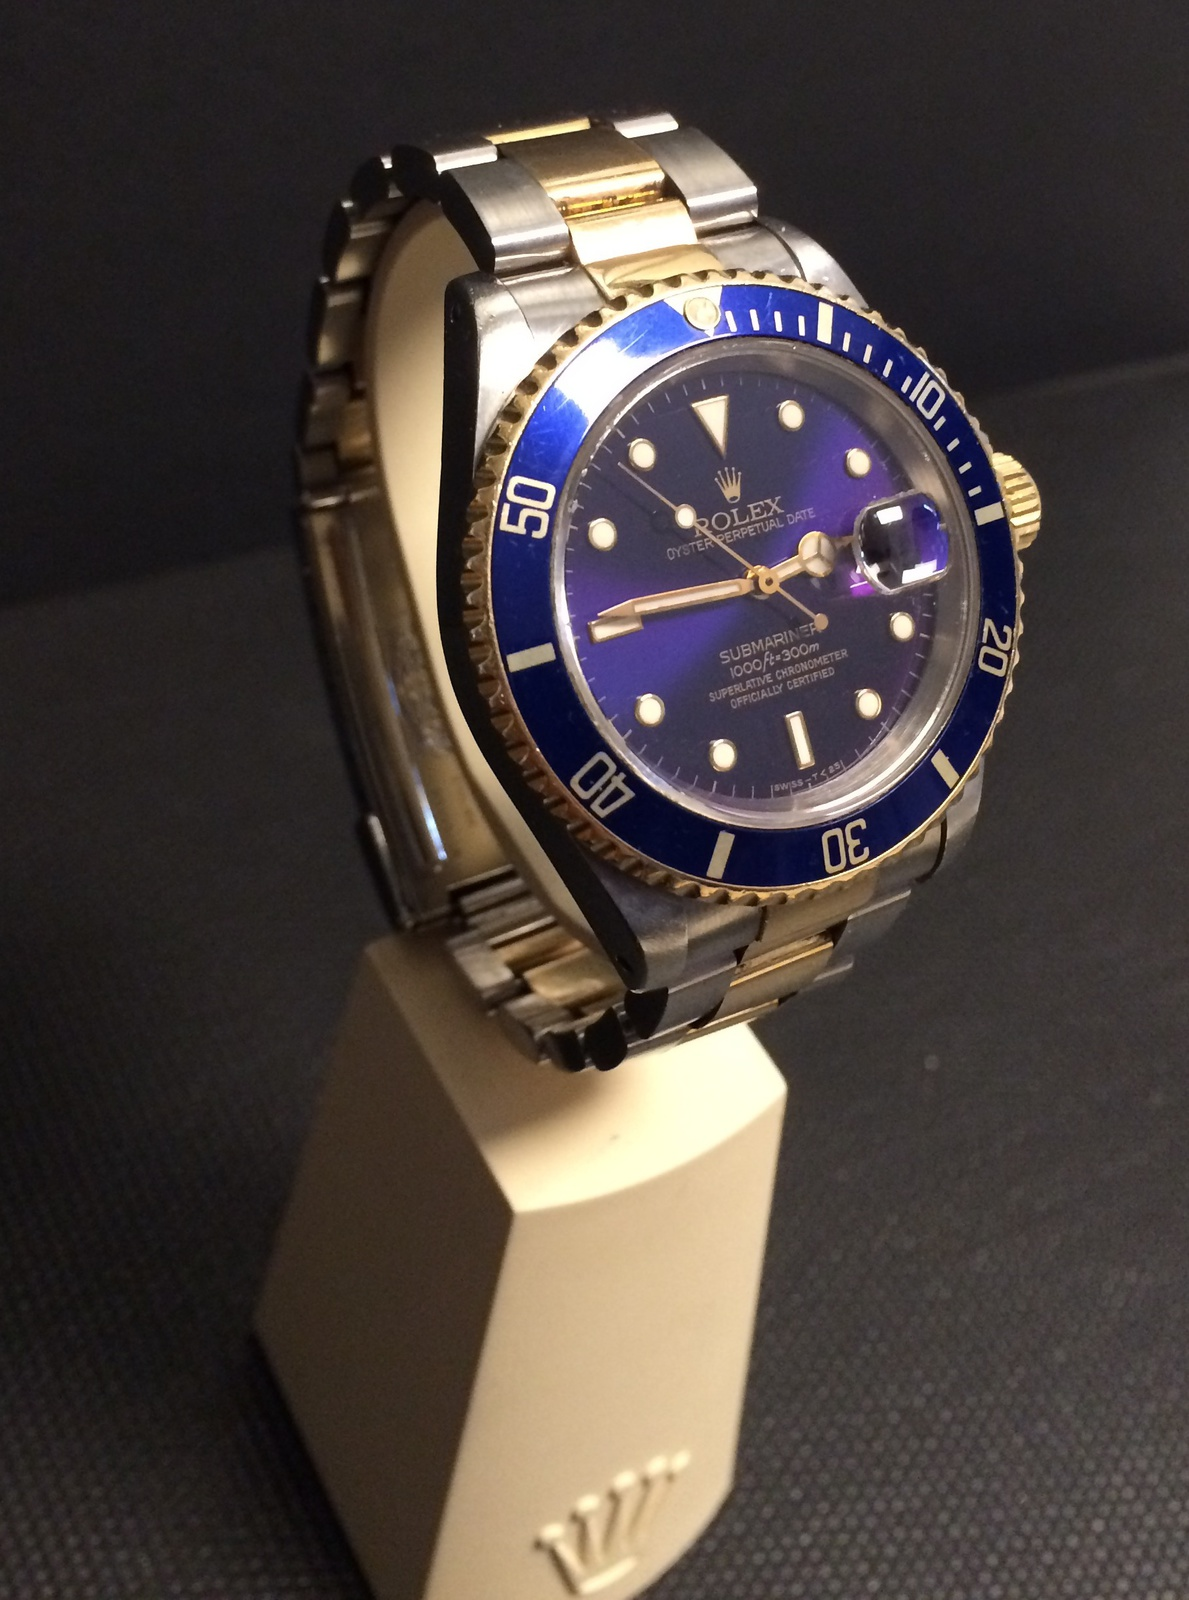 verkauf tausch rolex submariner 16613 stahl gold blau. Black Bedroom Furniture Sets. Home Design Ideas